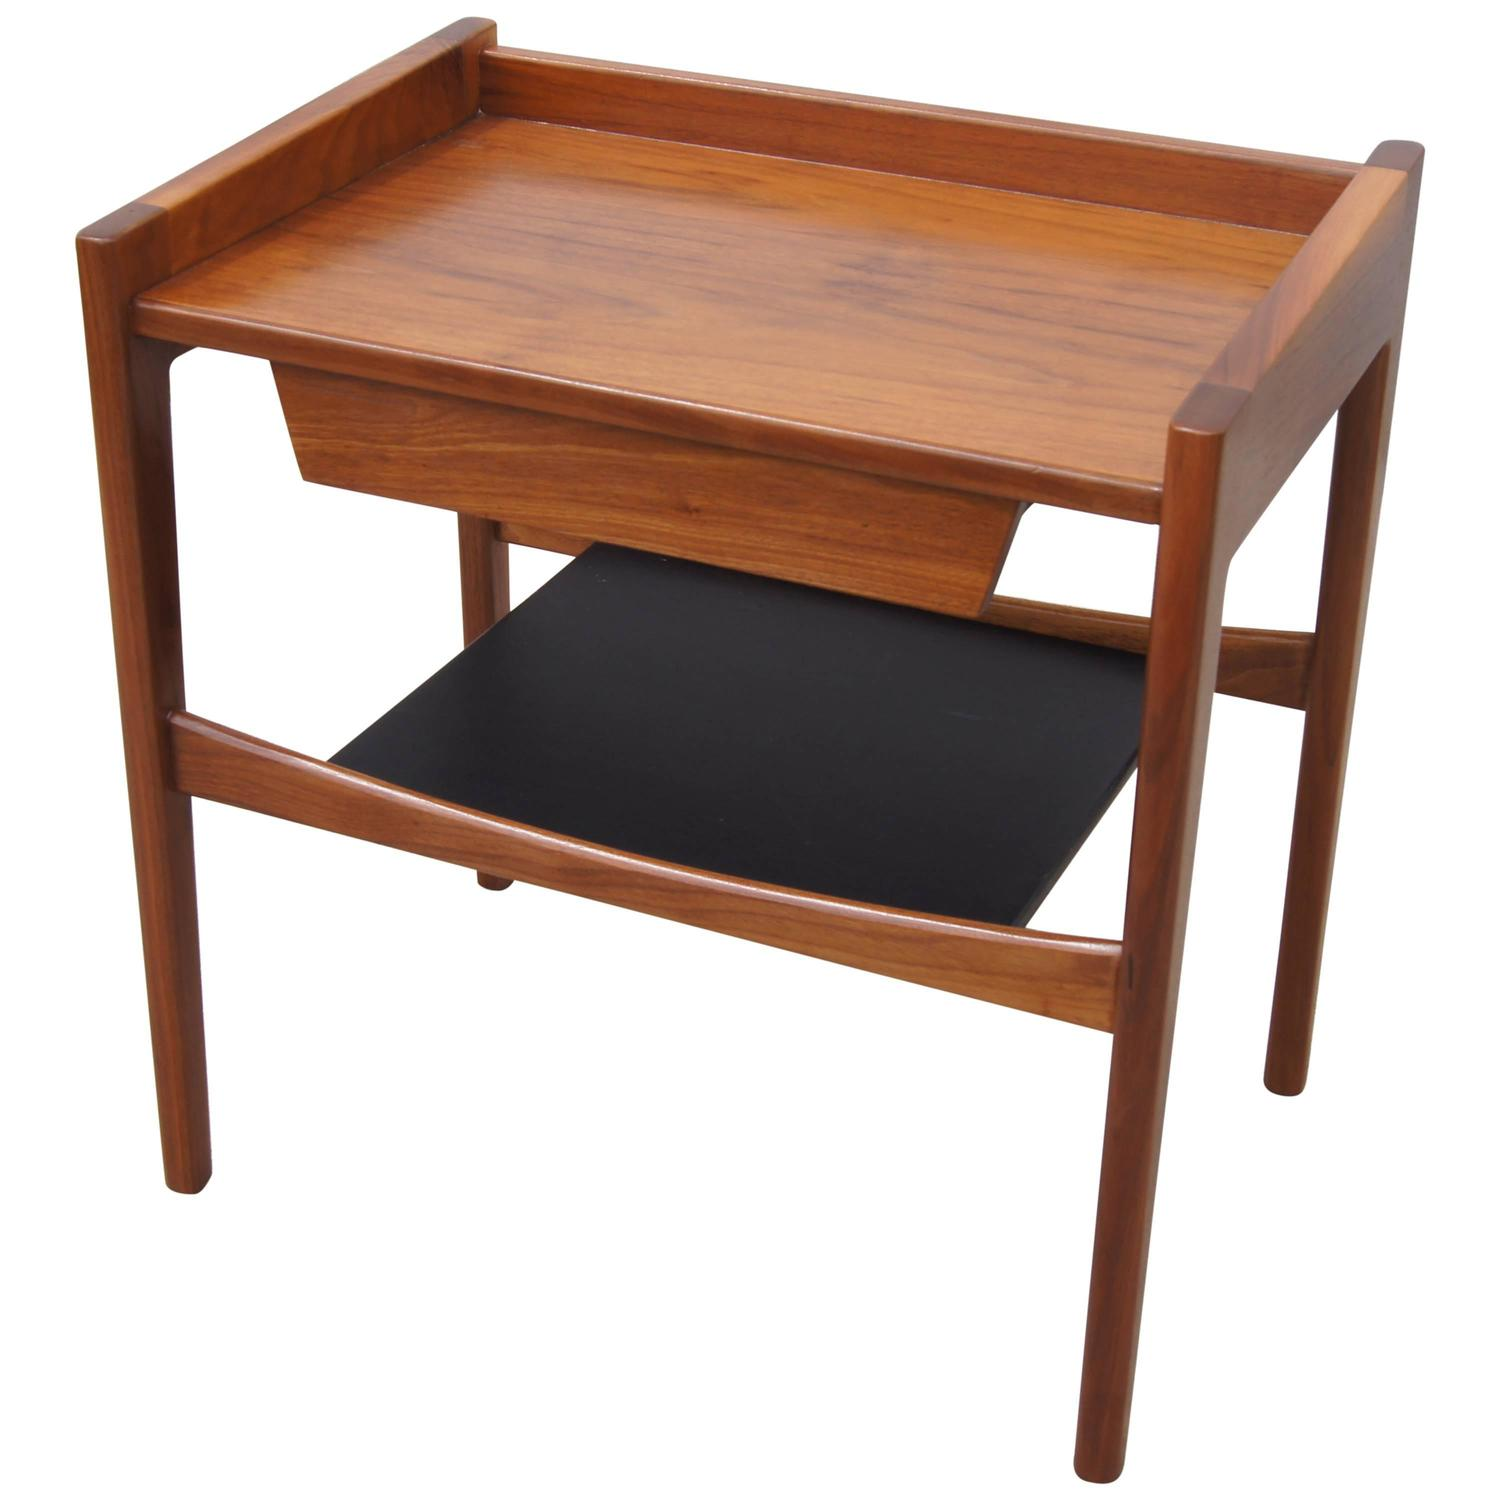 Rare walnut and leather low side table by jens risom for sale at rare walnut and leather low side table by jens risom for sale at 1stdibs geotapseo Choice Image